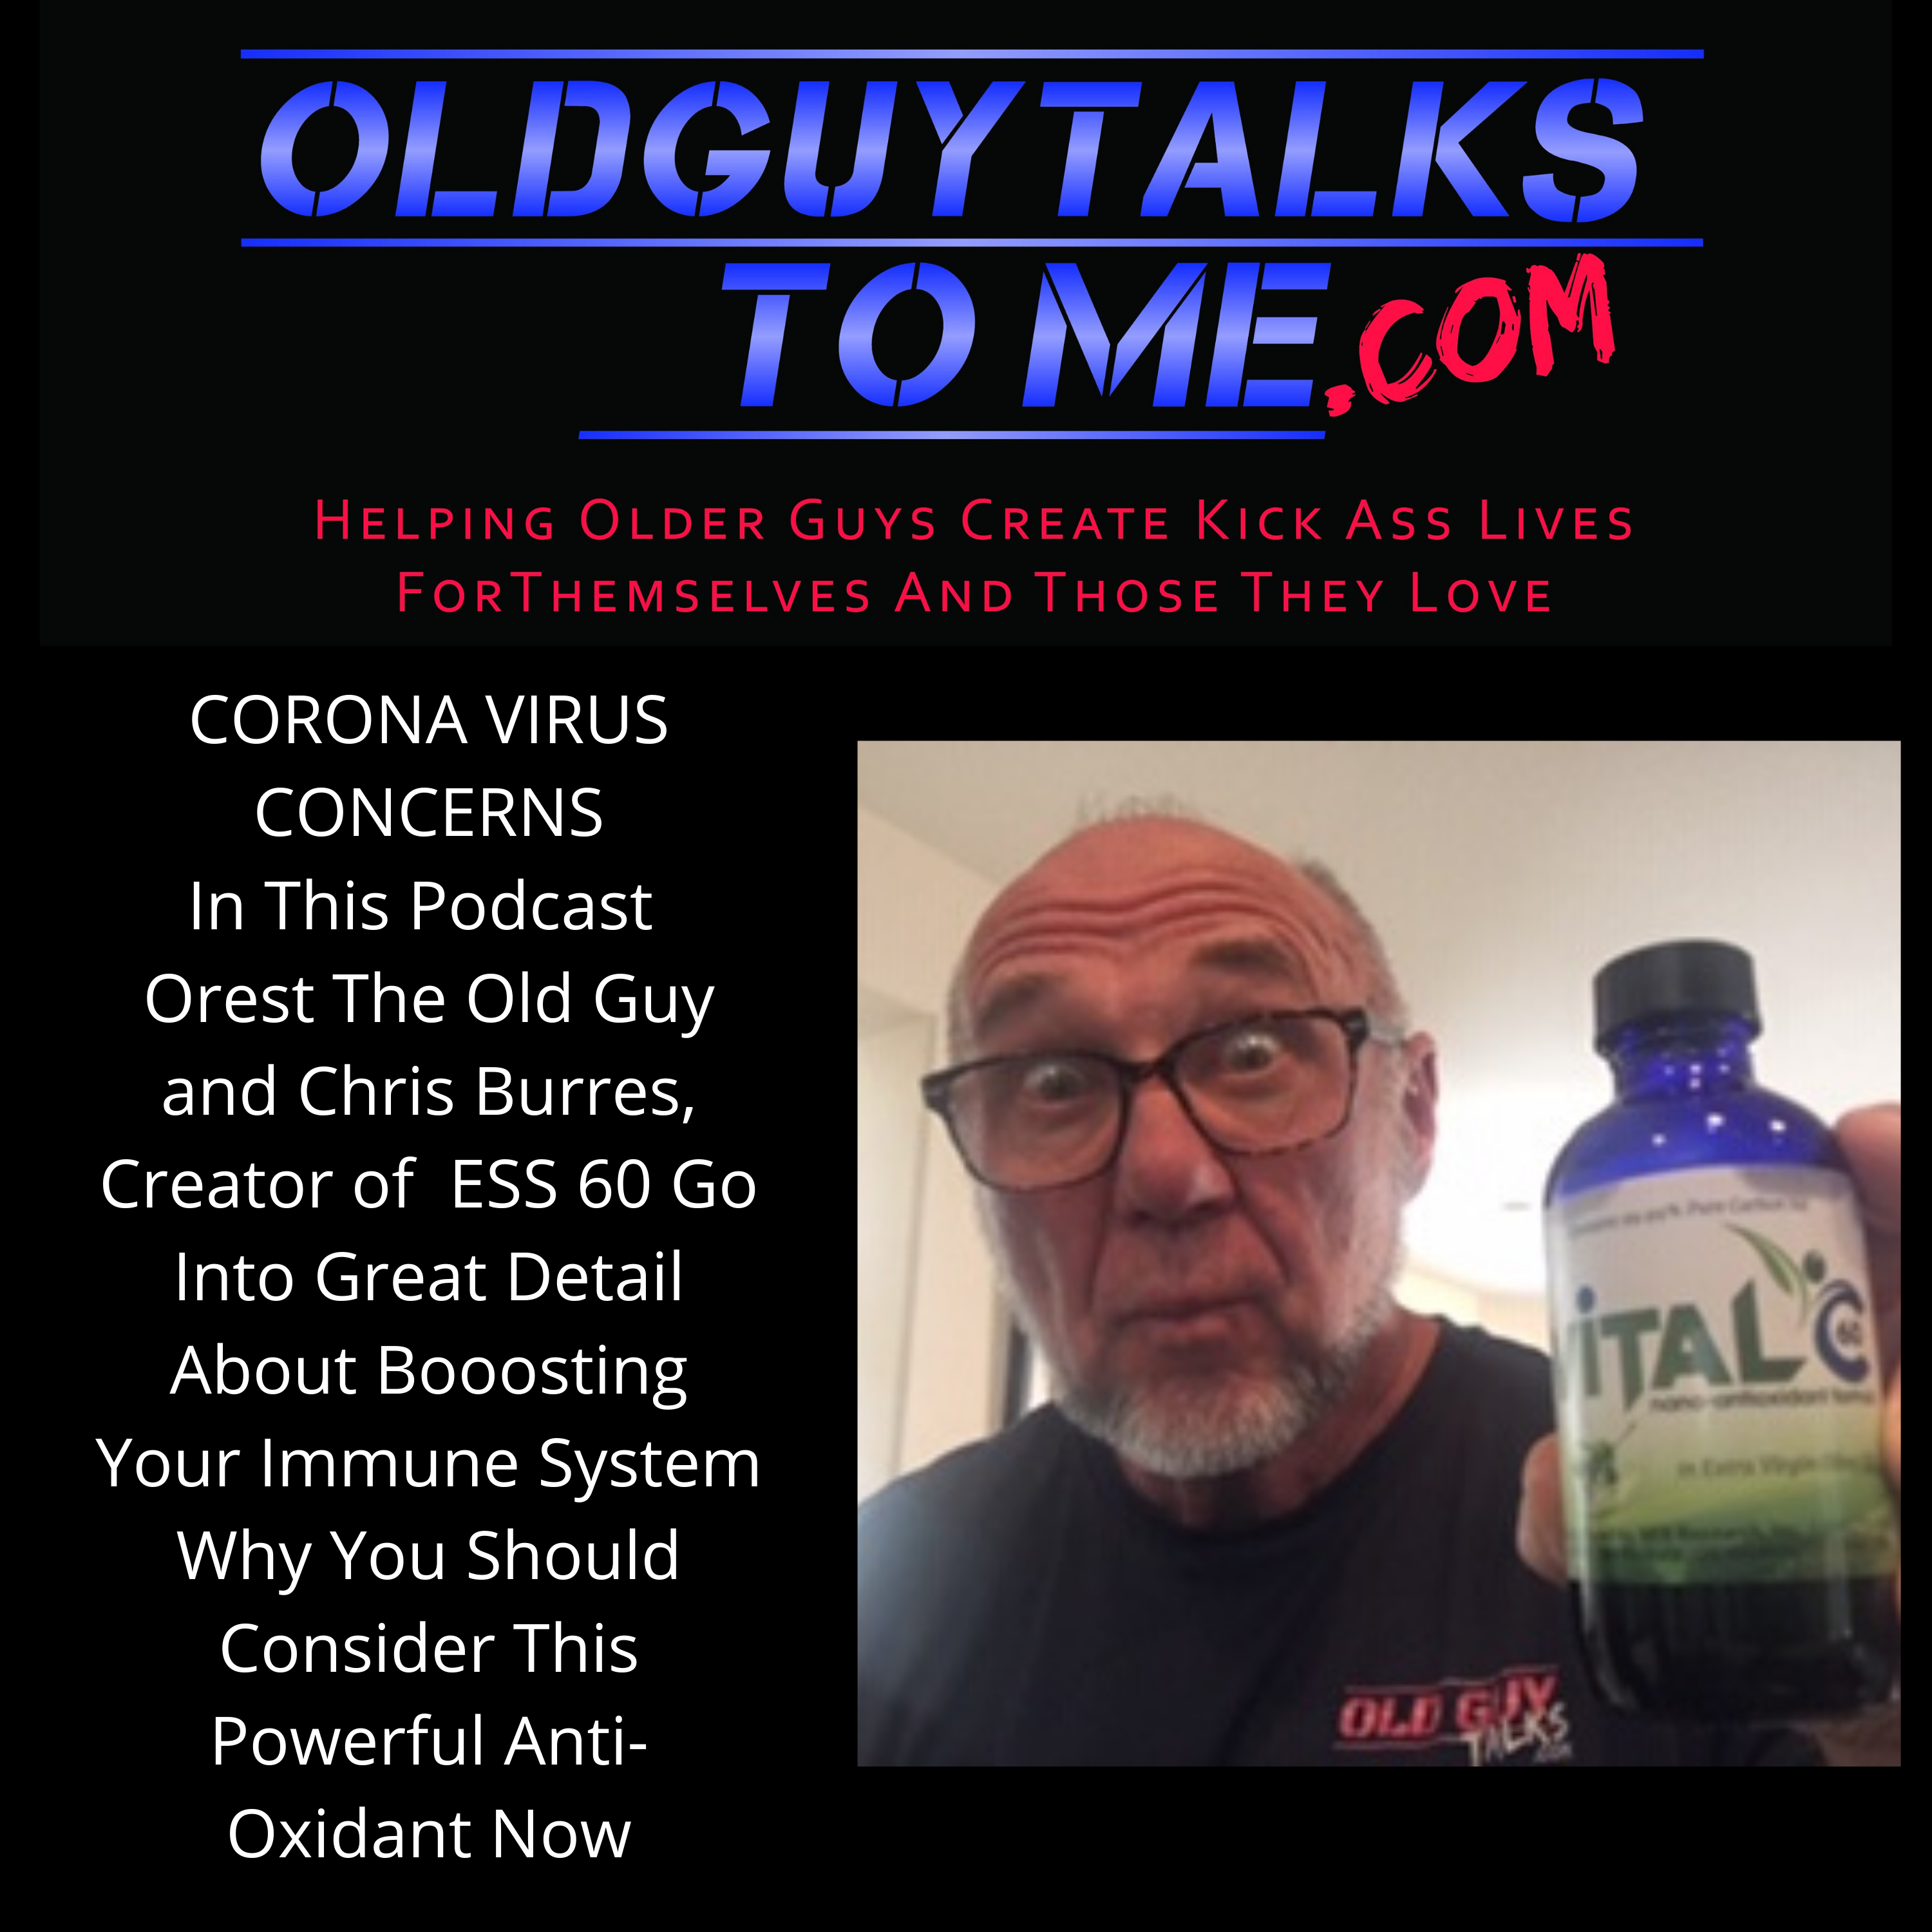 OldGuyTalksToMe - WHAT YOU CAN DO ABOUT CORONA VIRUS